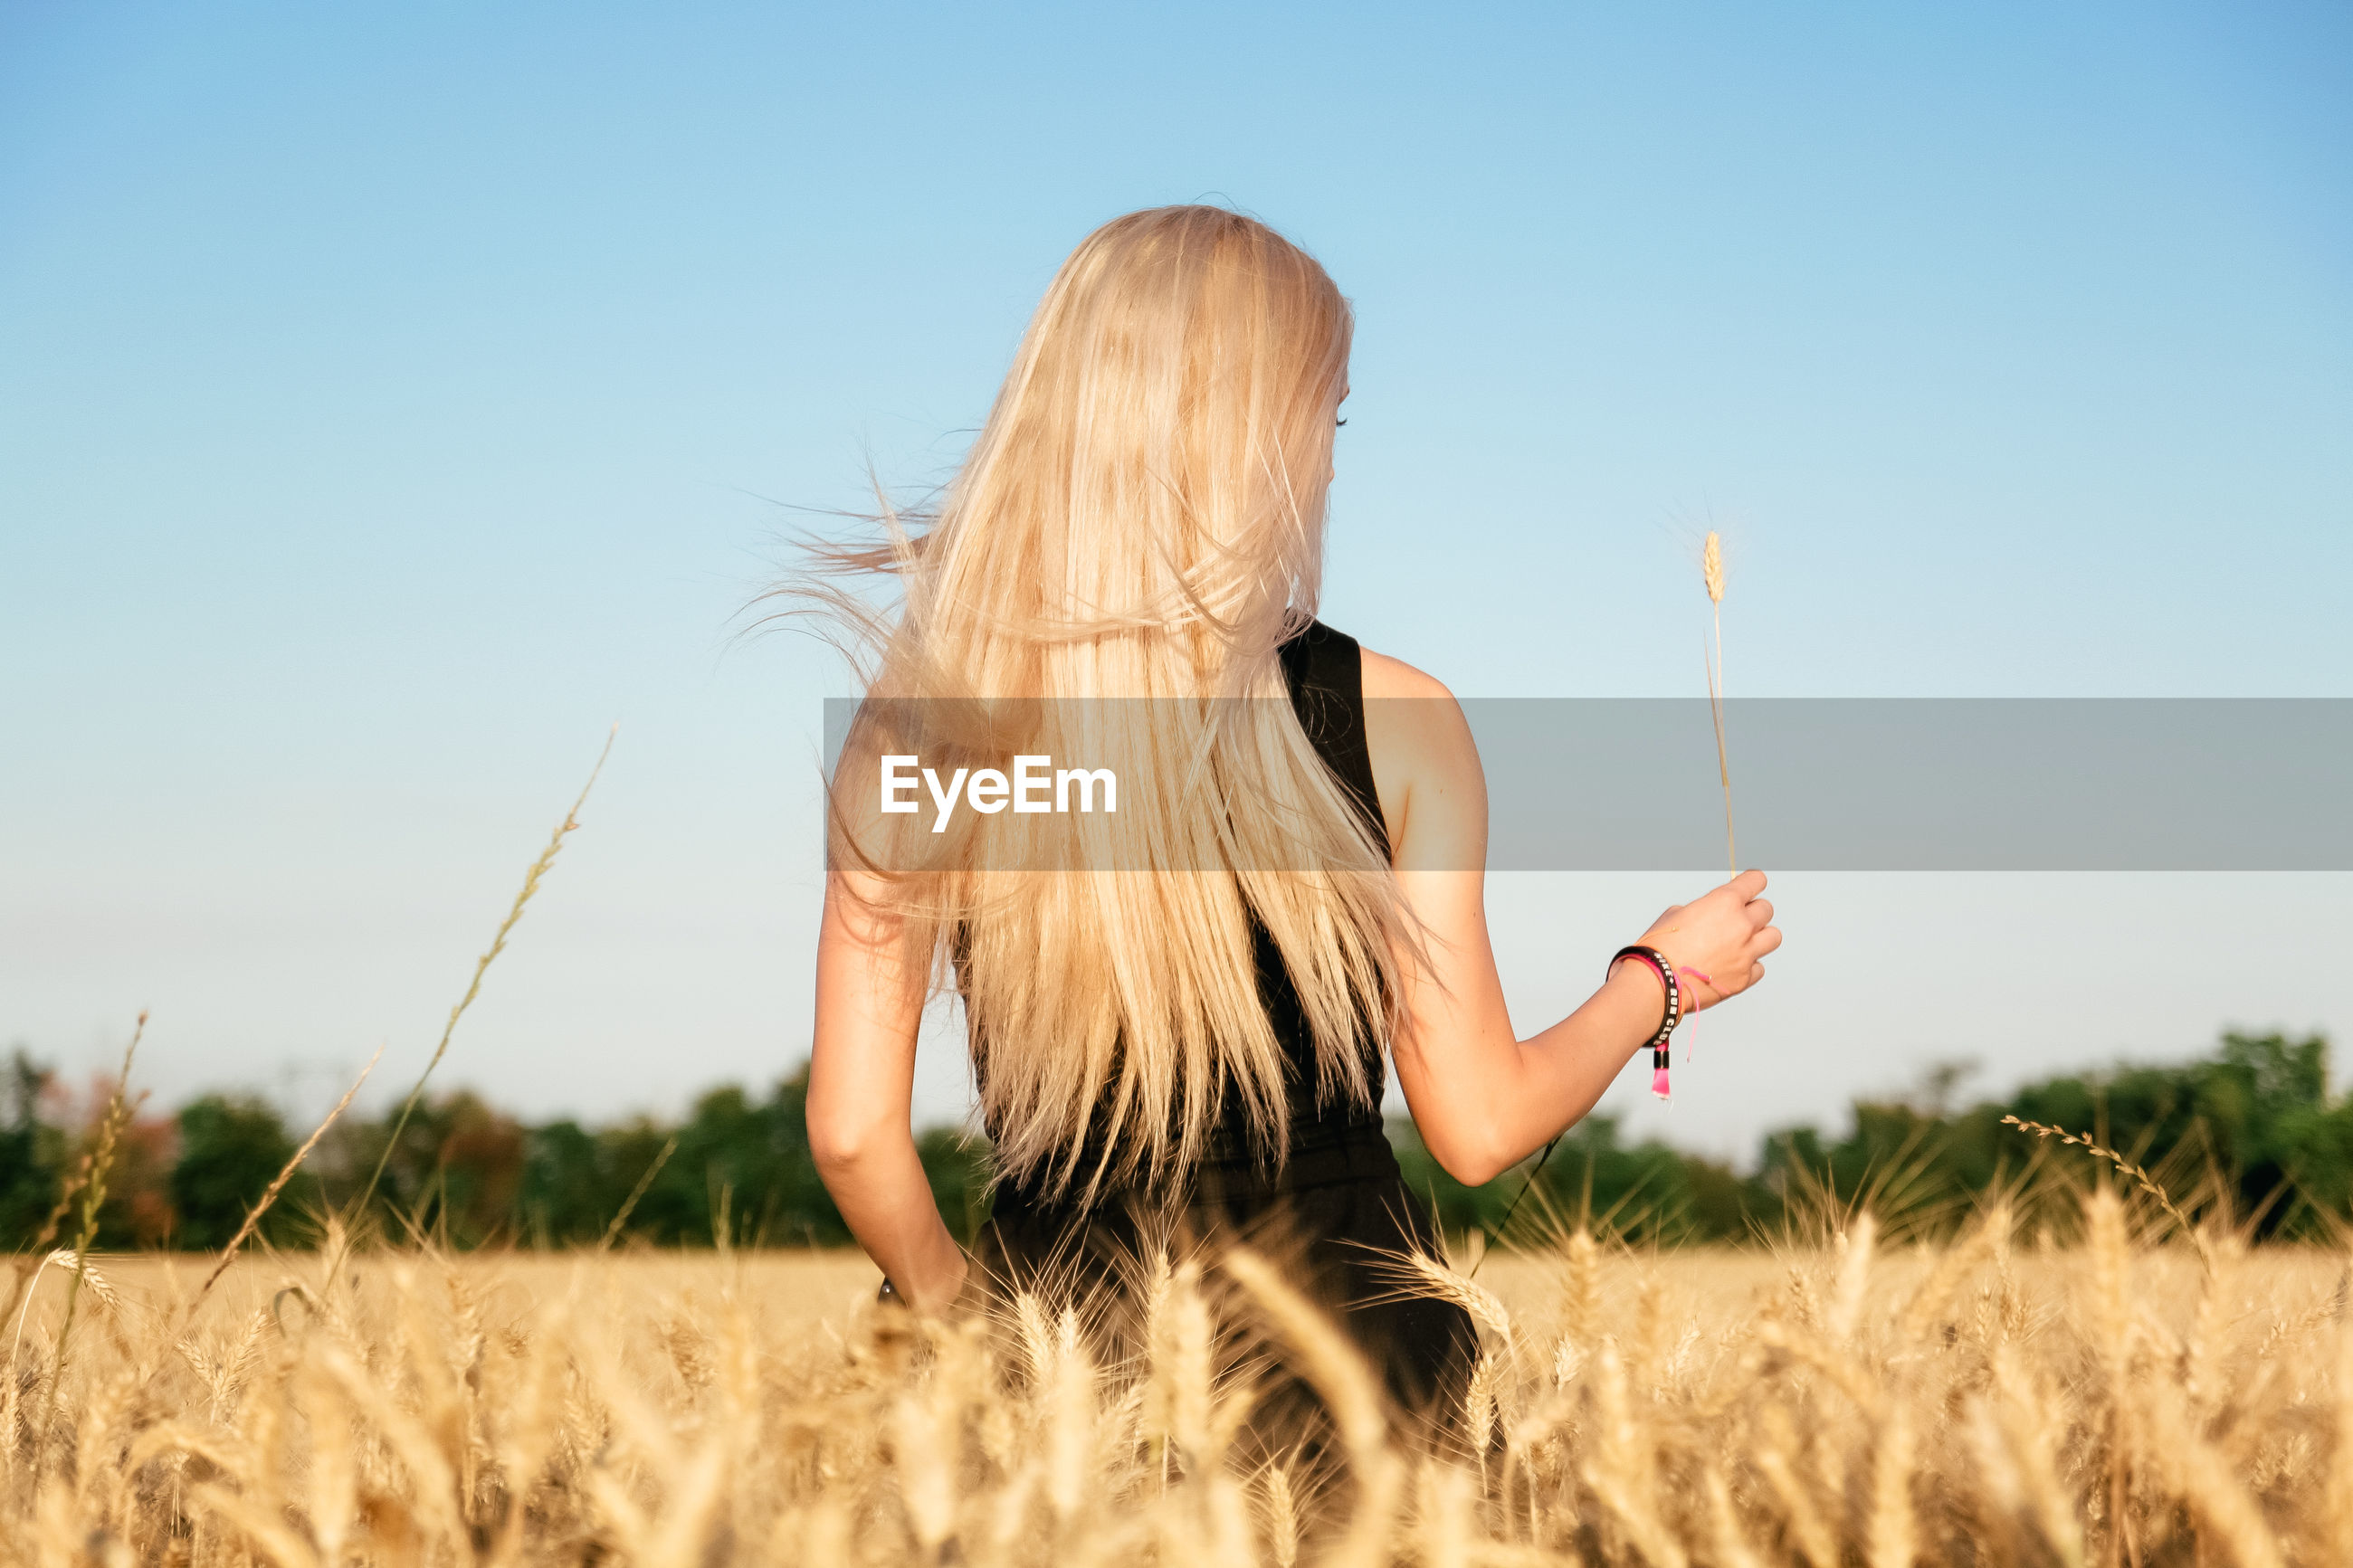 Rear view of woman holding plant while standing in wheat farm against clear sky